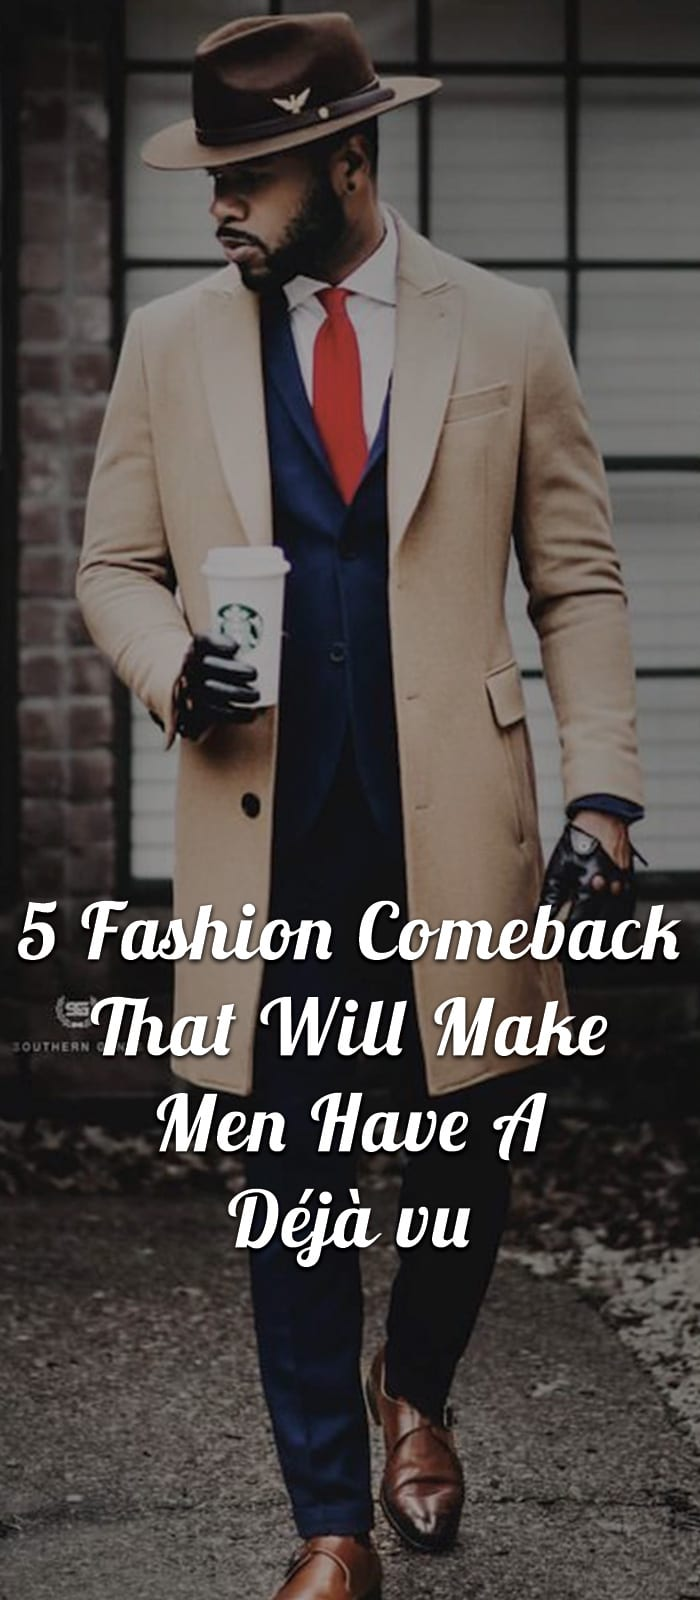 5-Fashion-Comeback-That-Will-Make-Men-Have-A-Déjà-vu